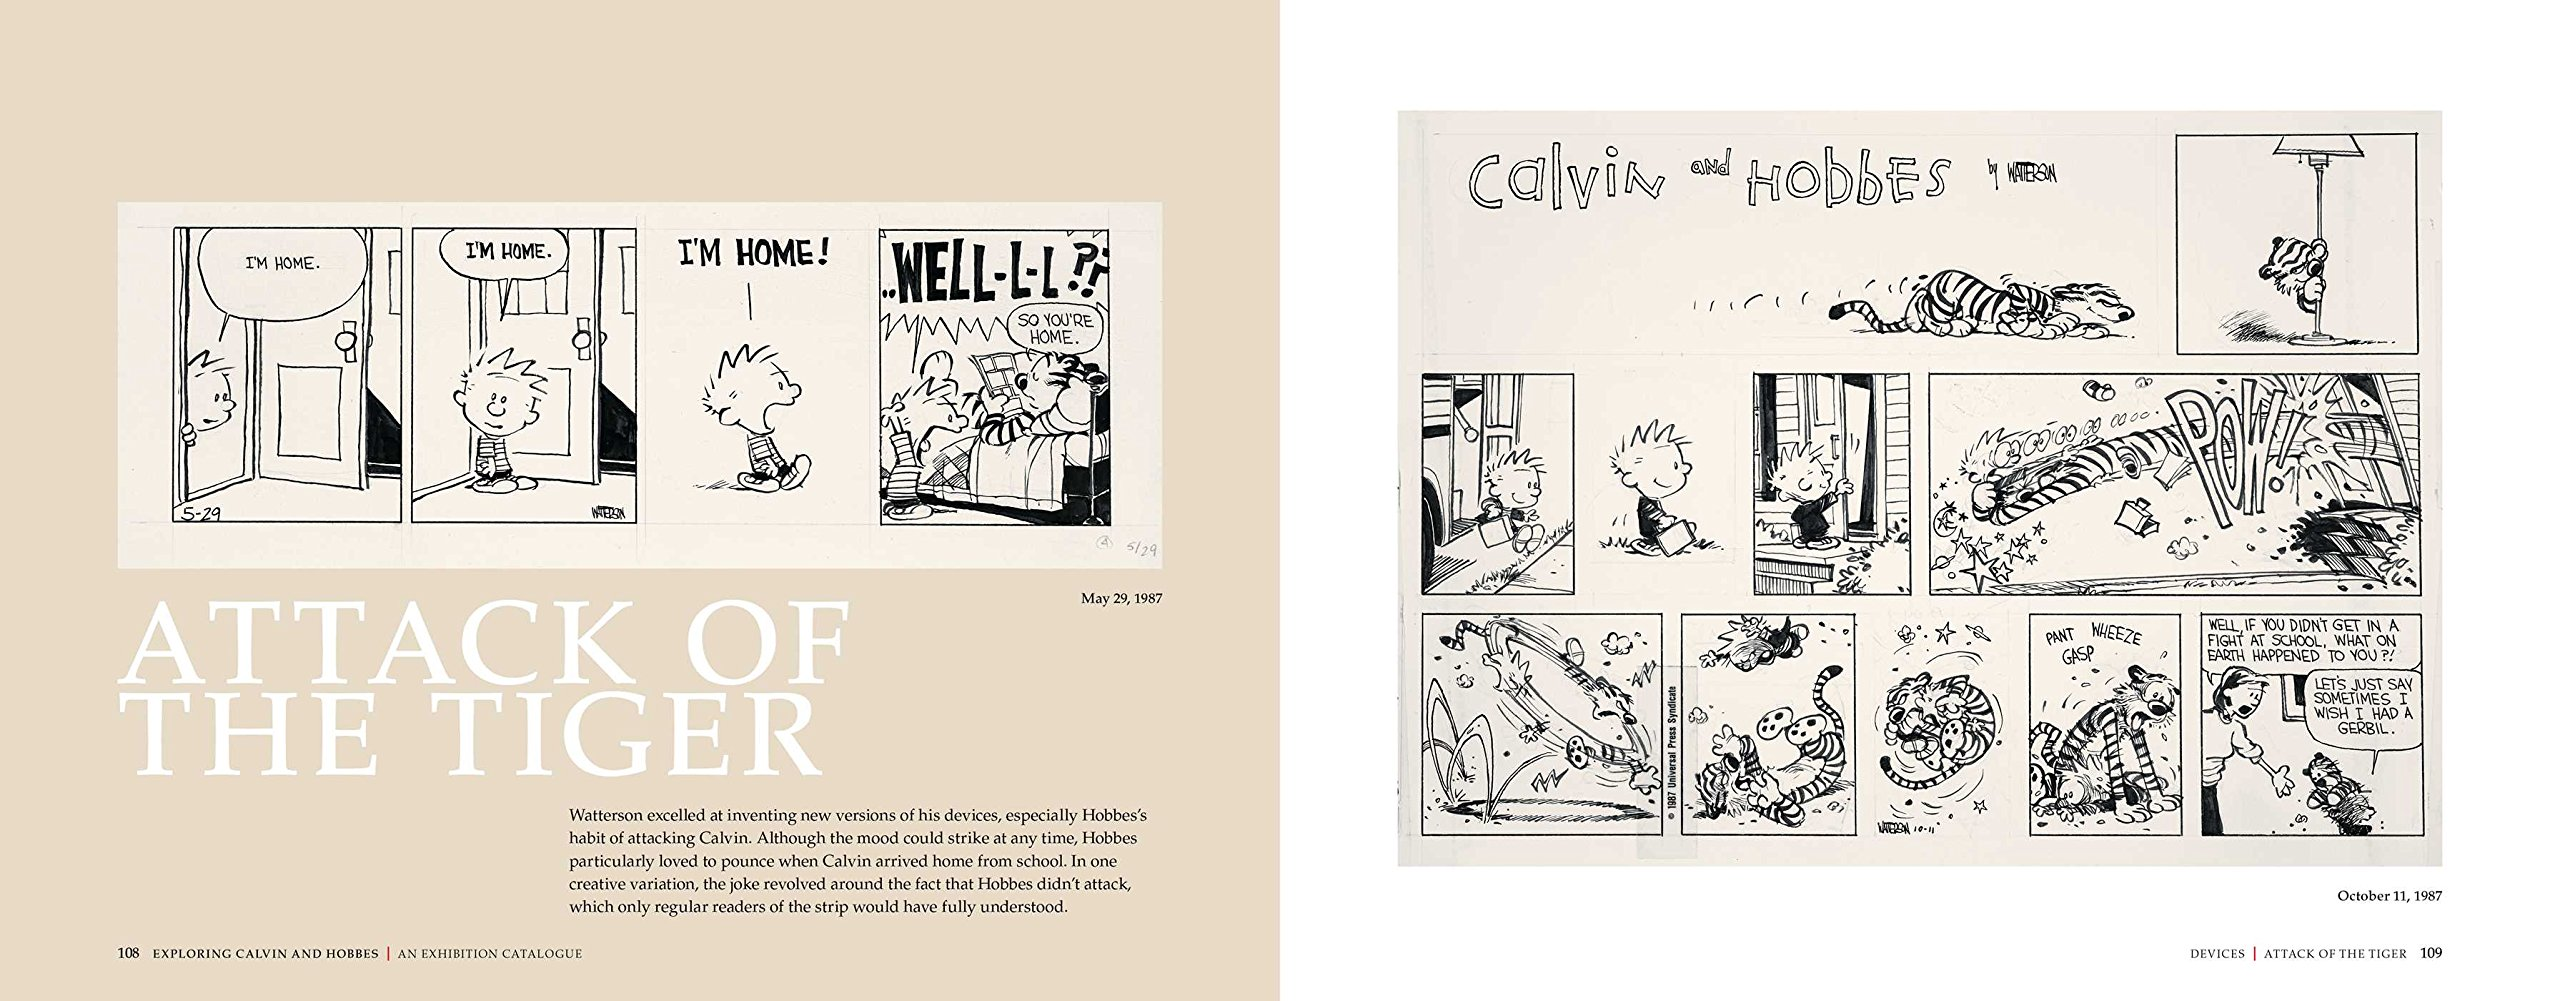 exploring calvin and hobbes an exhibition catalogue bill